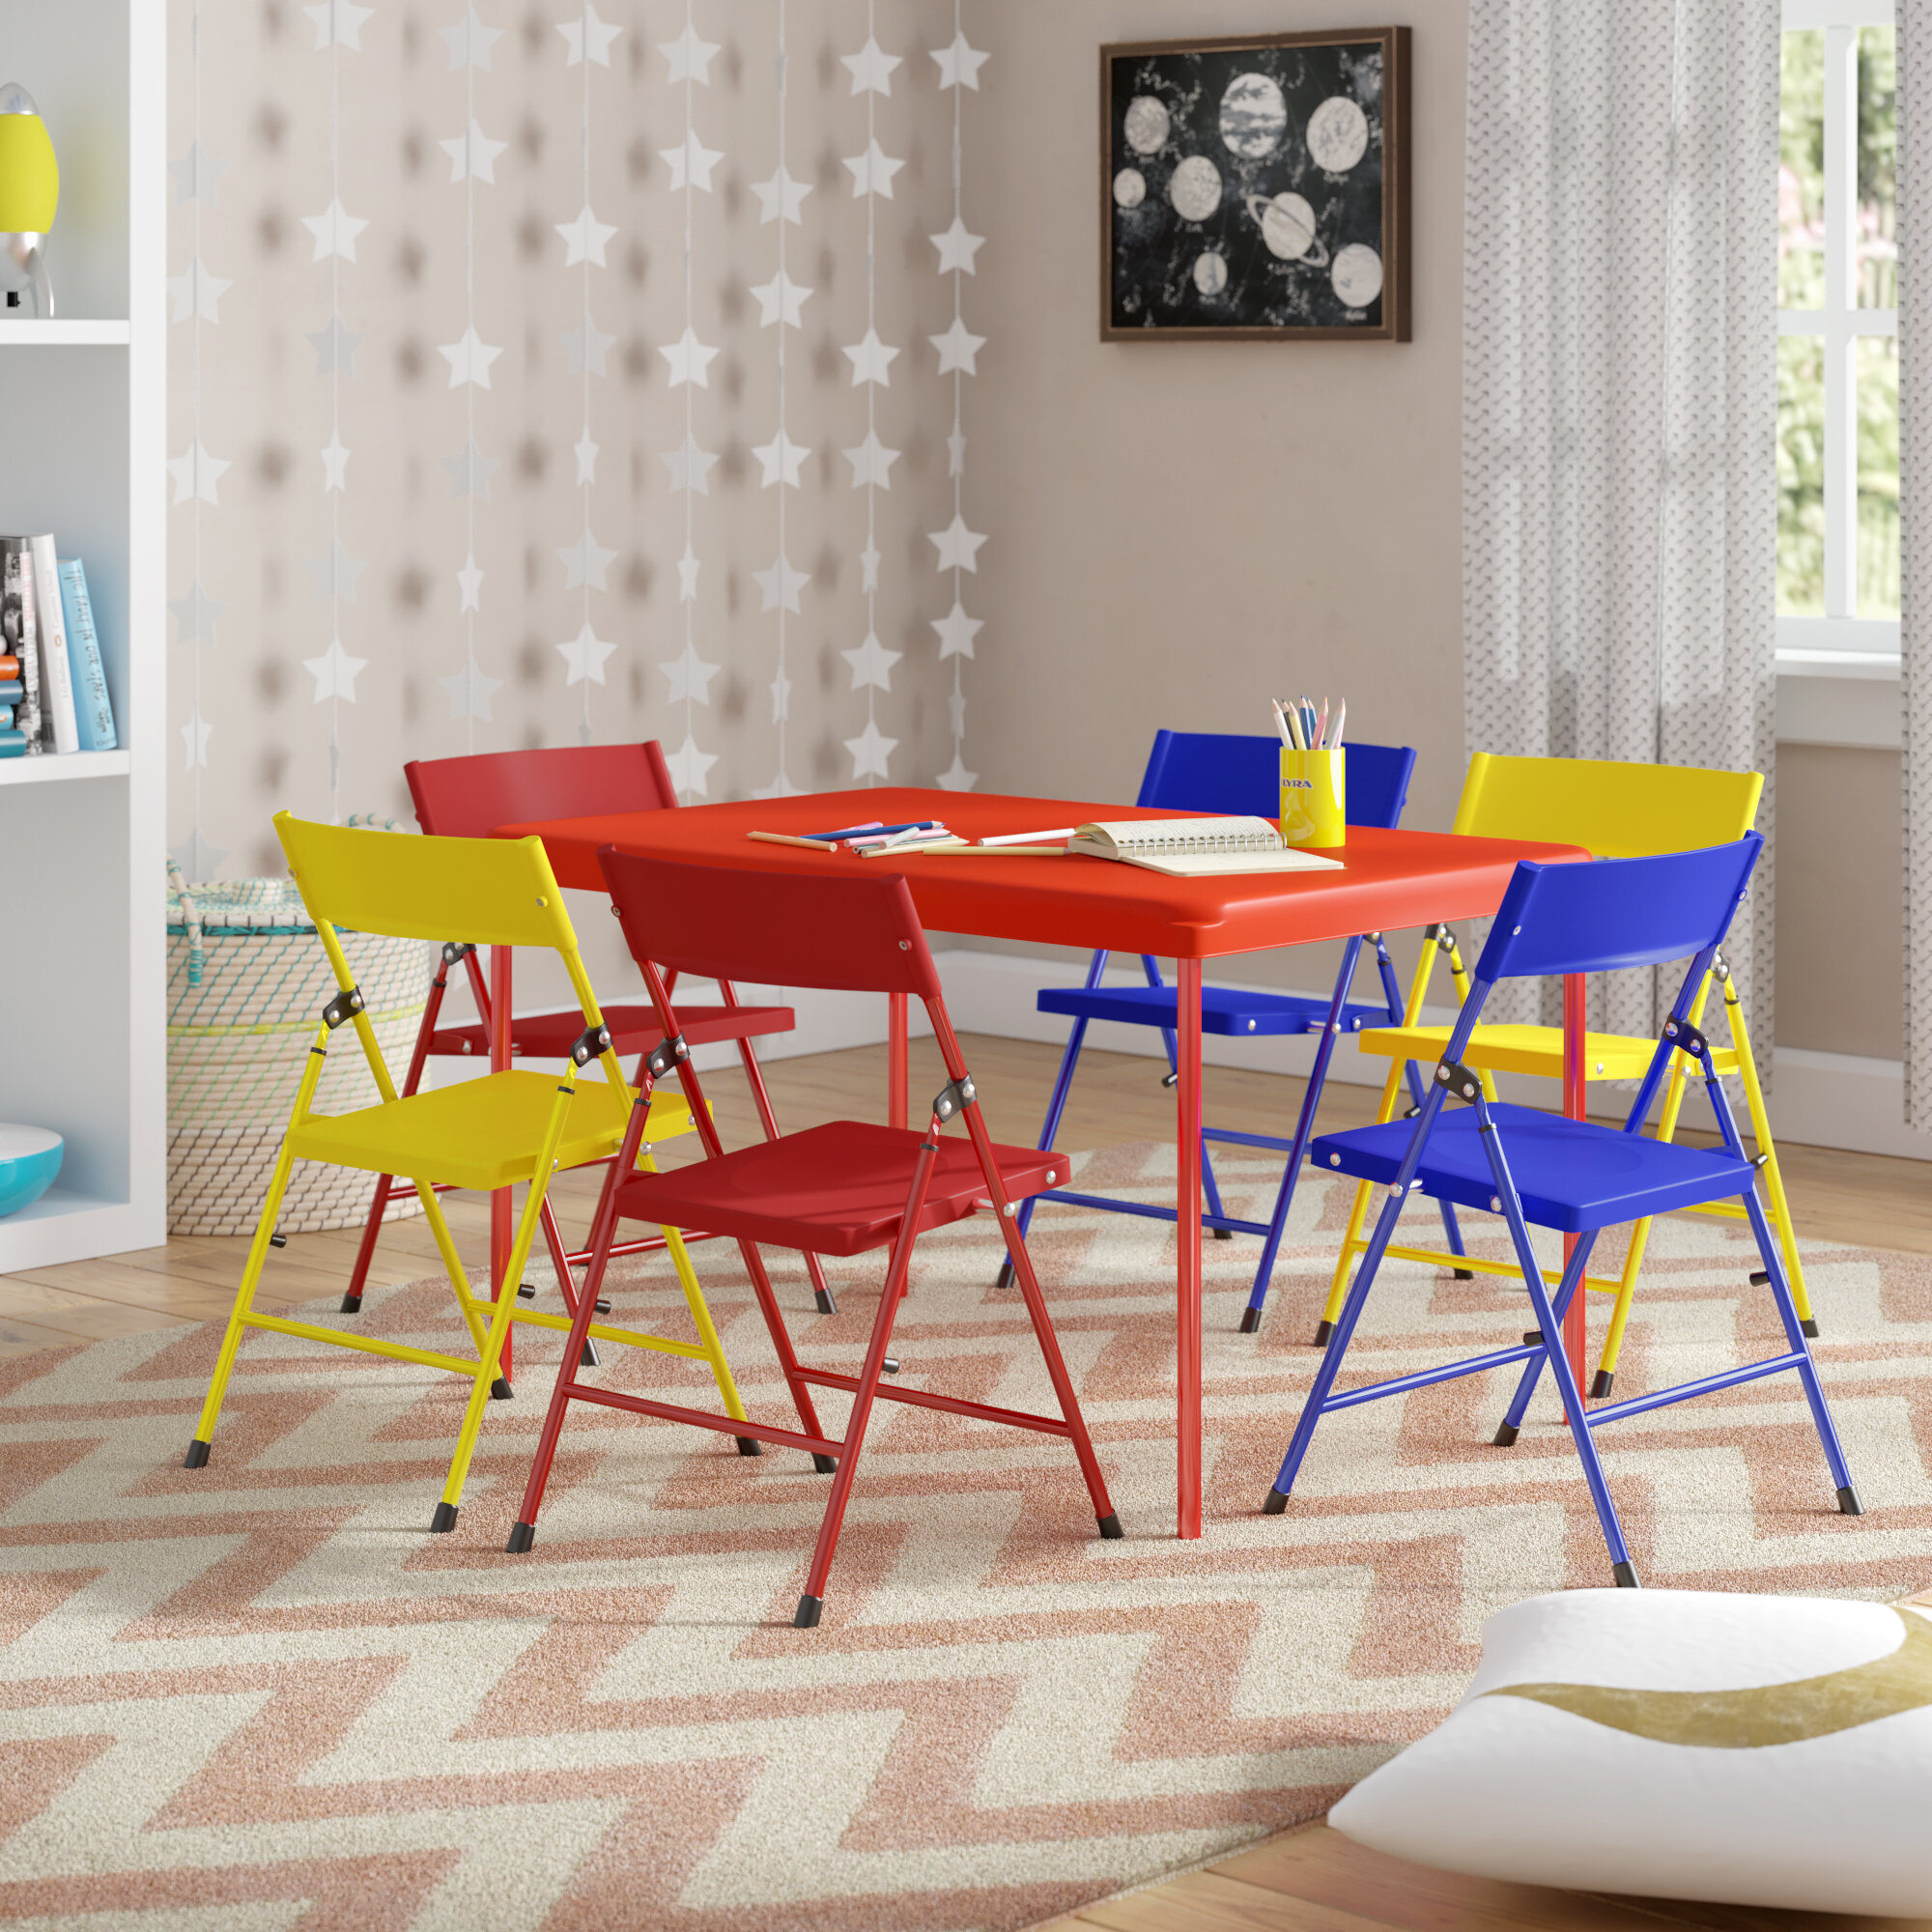 Phenomenal Adrian Kids 7 Piece Play Table And Chair Set Machost Co Dining Chair Design Ideas Machostcouk